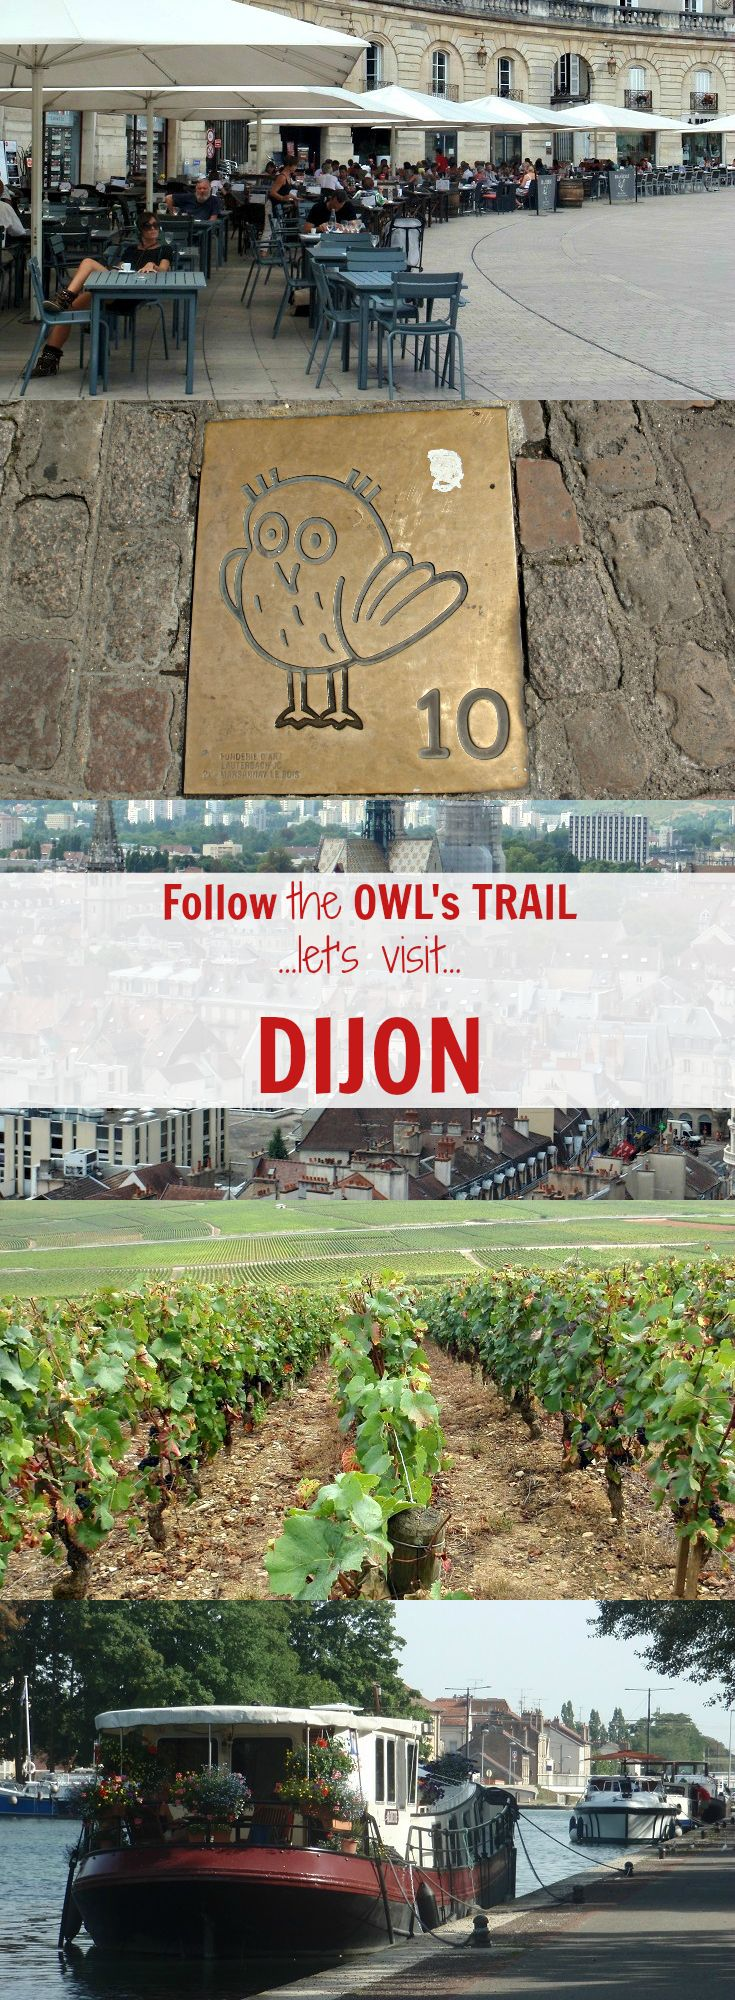 5 unforgettable moments in Dijon, France